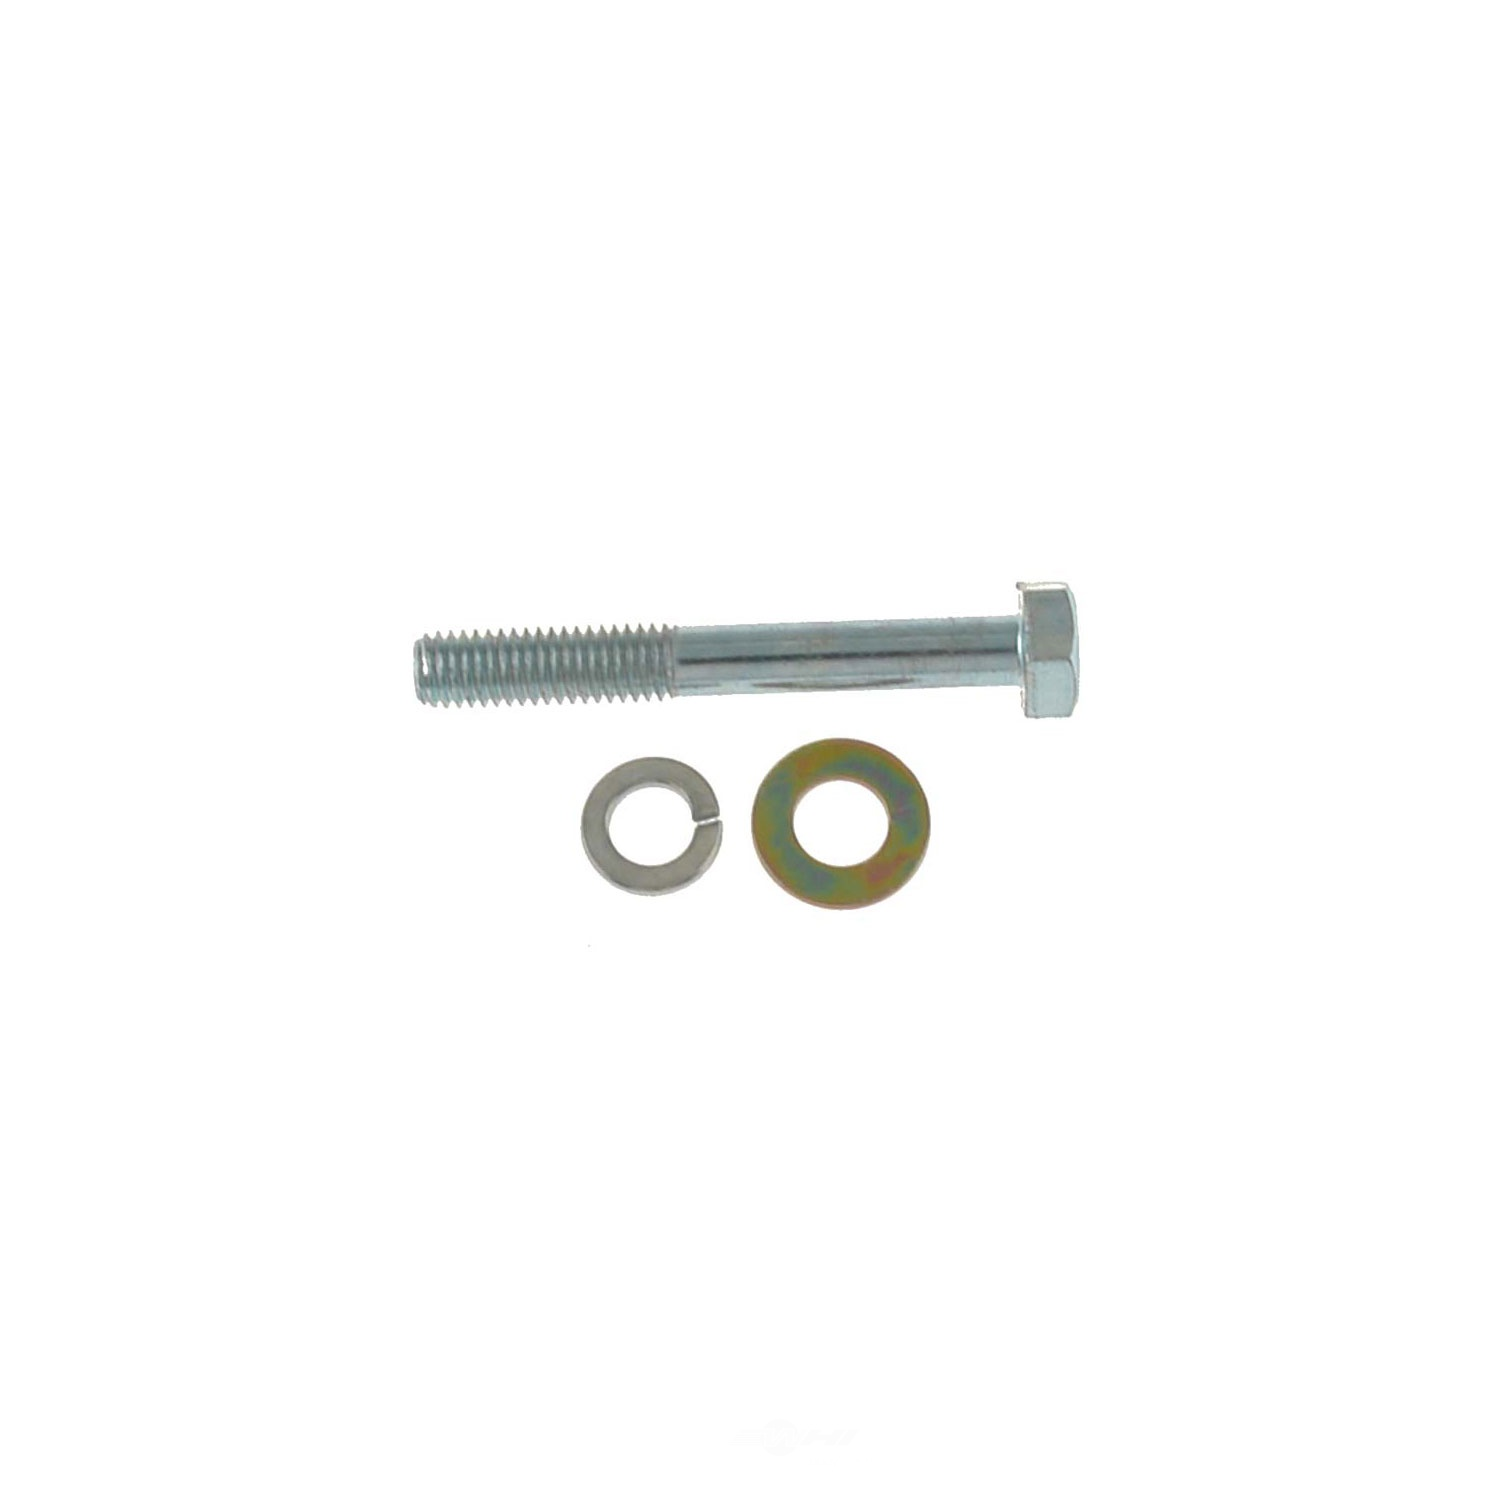 CARLSON QUALITY BRAKE PARTS - Disc Brake Caliper Bolt Kit - CRL 14043